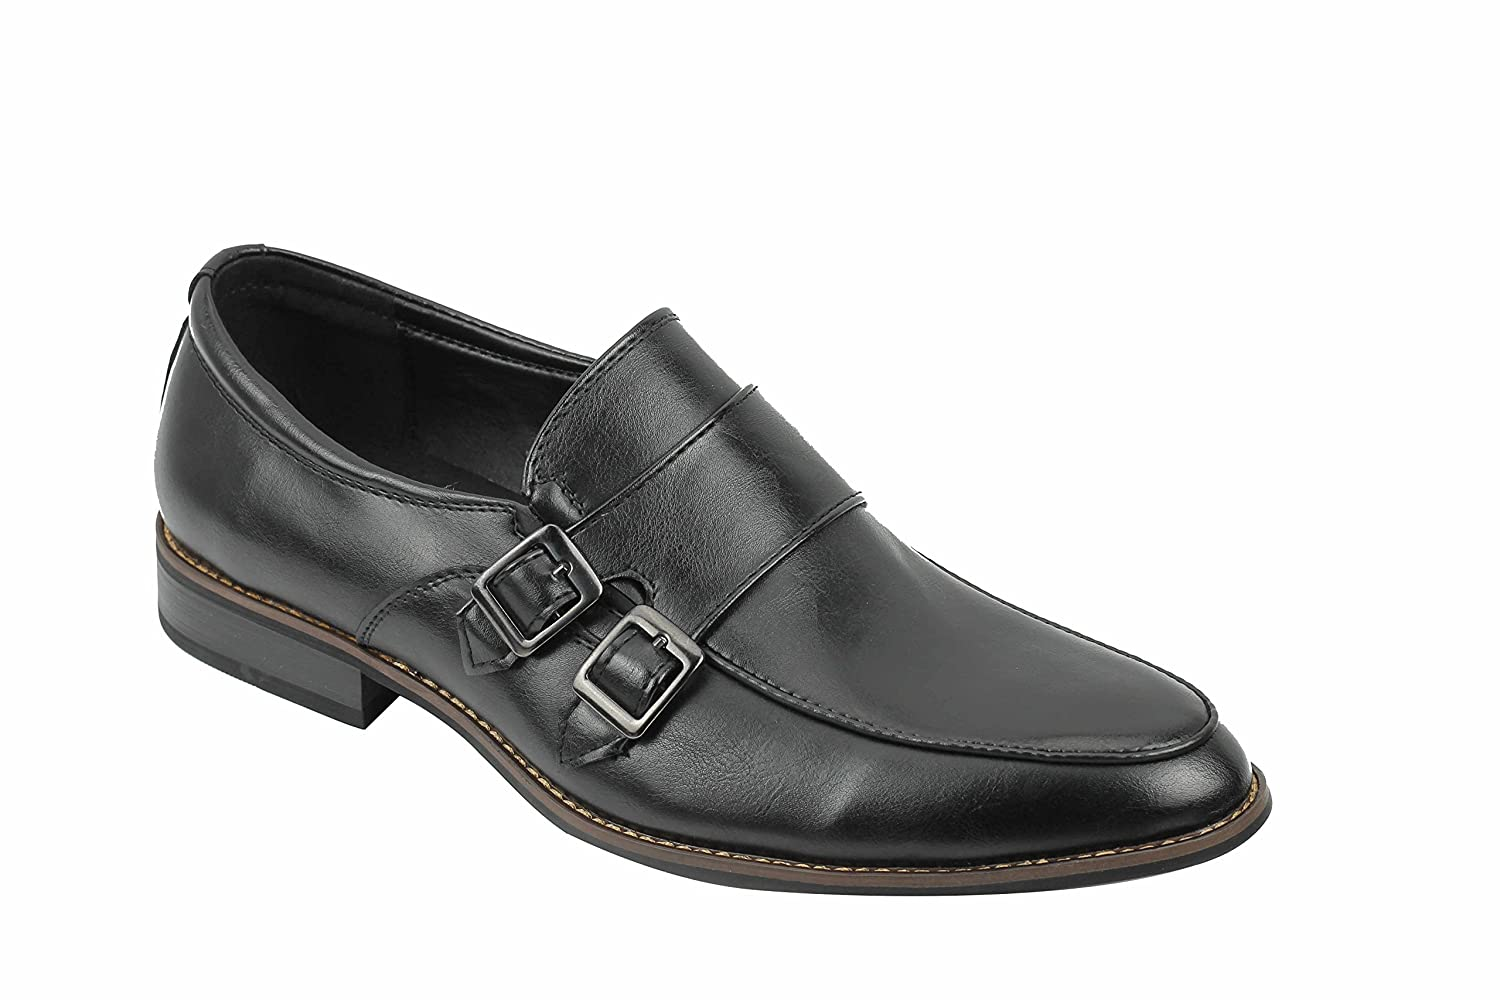 Mens Leather Lined Black Brown Buckle Monk Strap Slip On Shoes Smart Casual Work UK Size